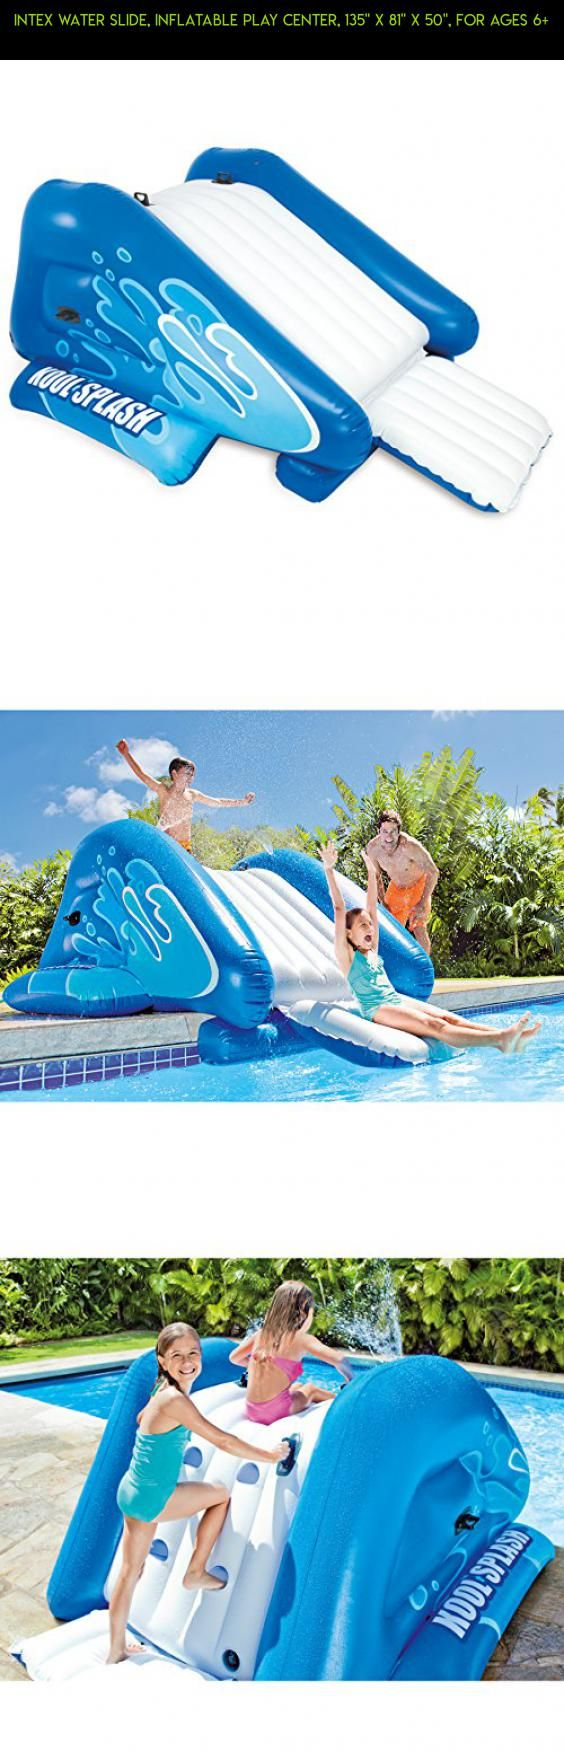 Intex Water Slide Inflatable Play Center